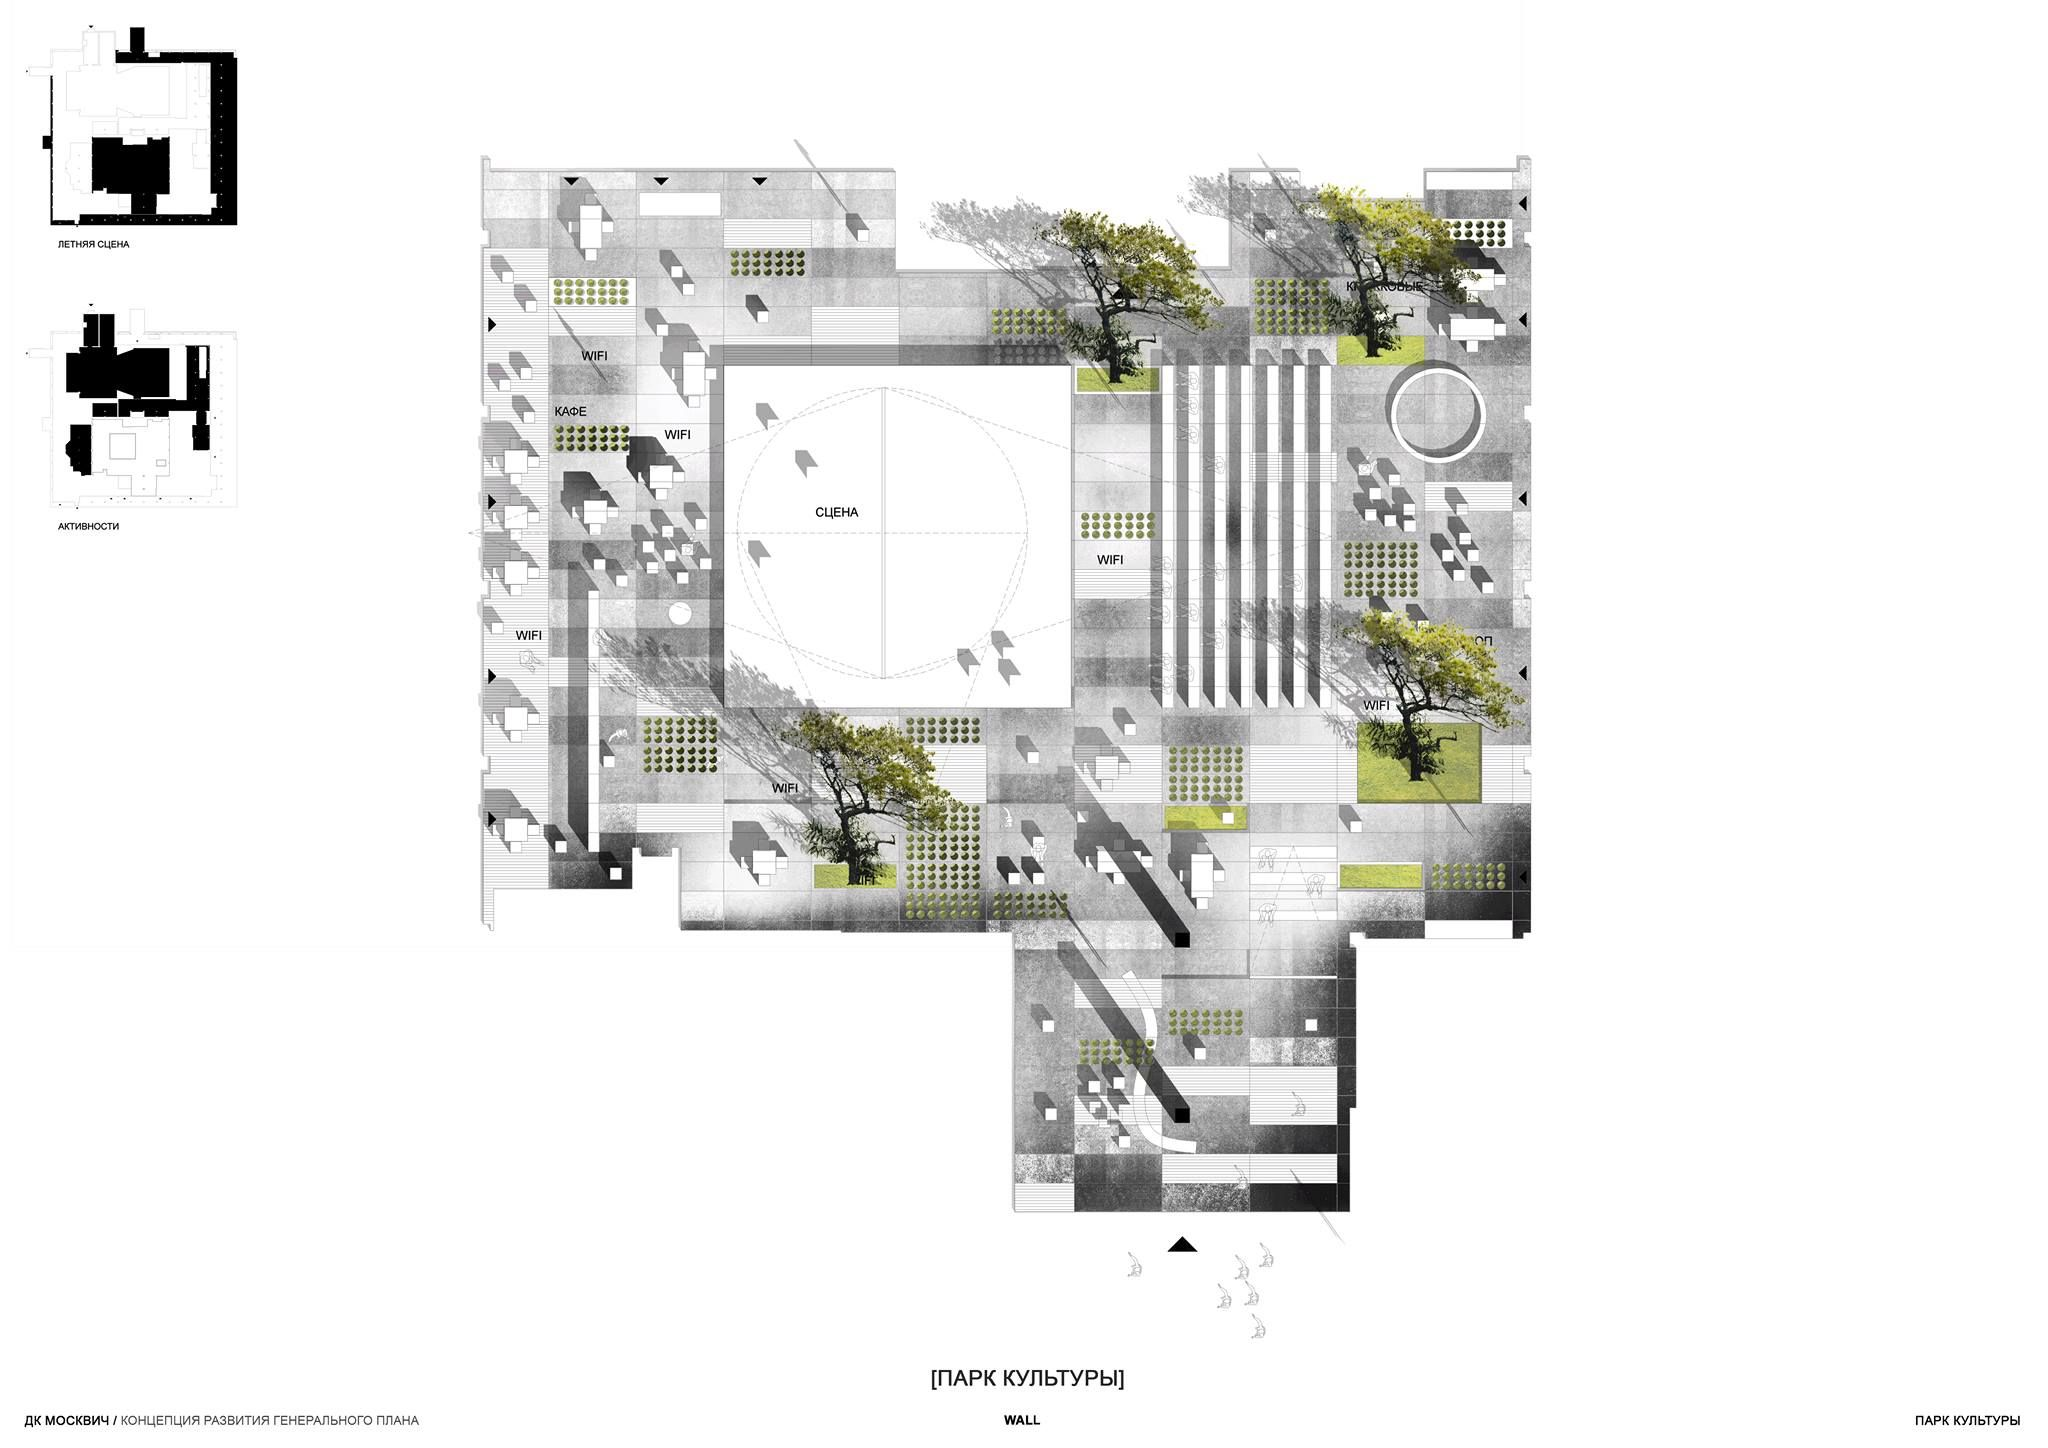 Pin By Matteo Nativo On Architectural Drawings